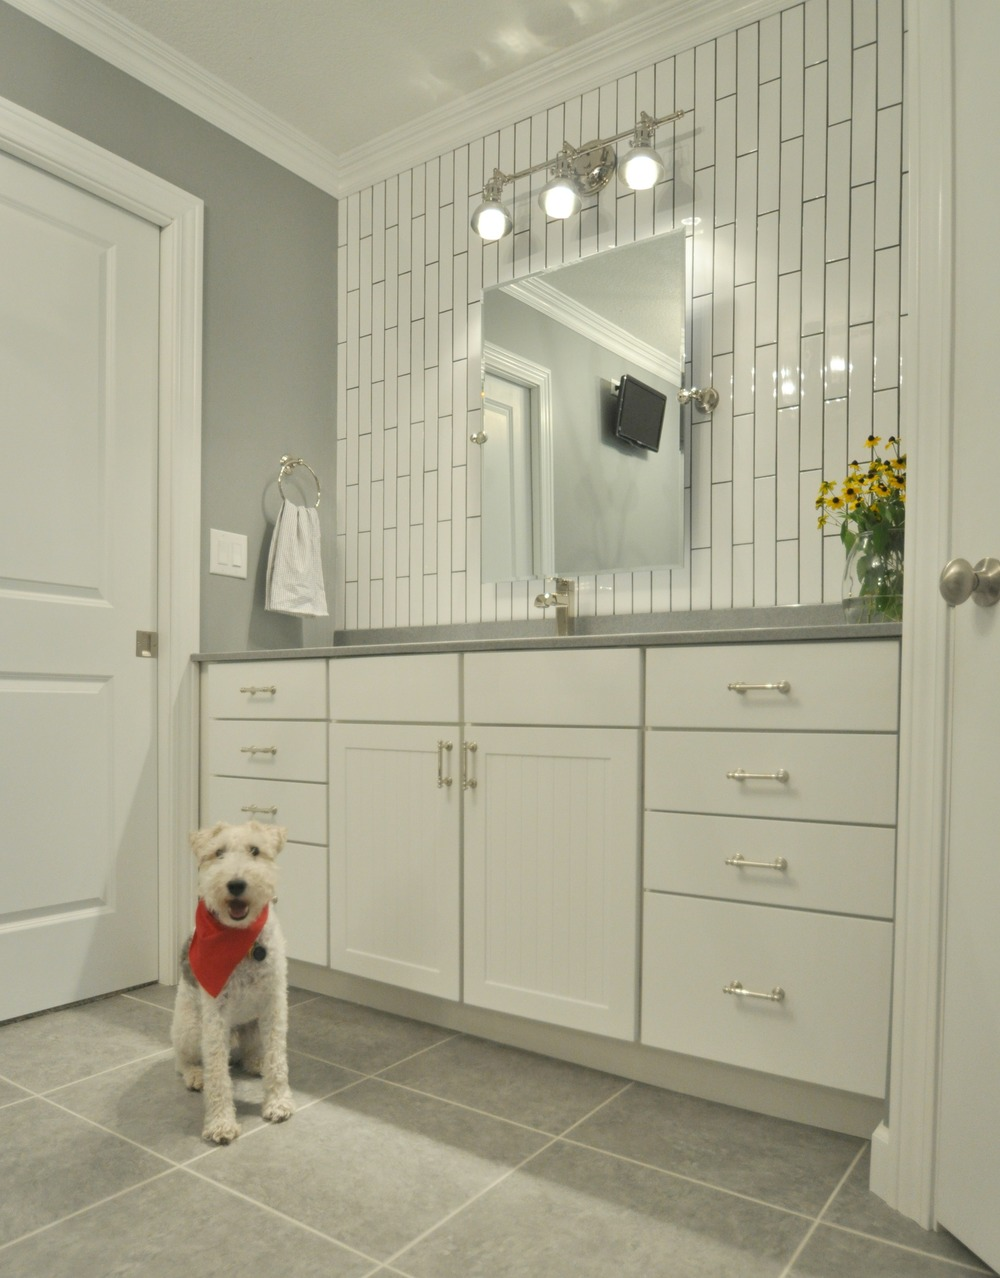 Master bathroom reveal decor and the dog Master tiles design for kitchen